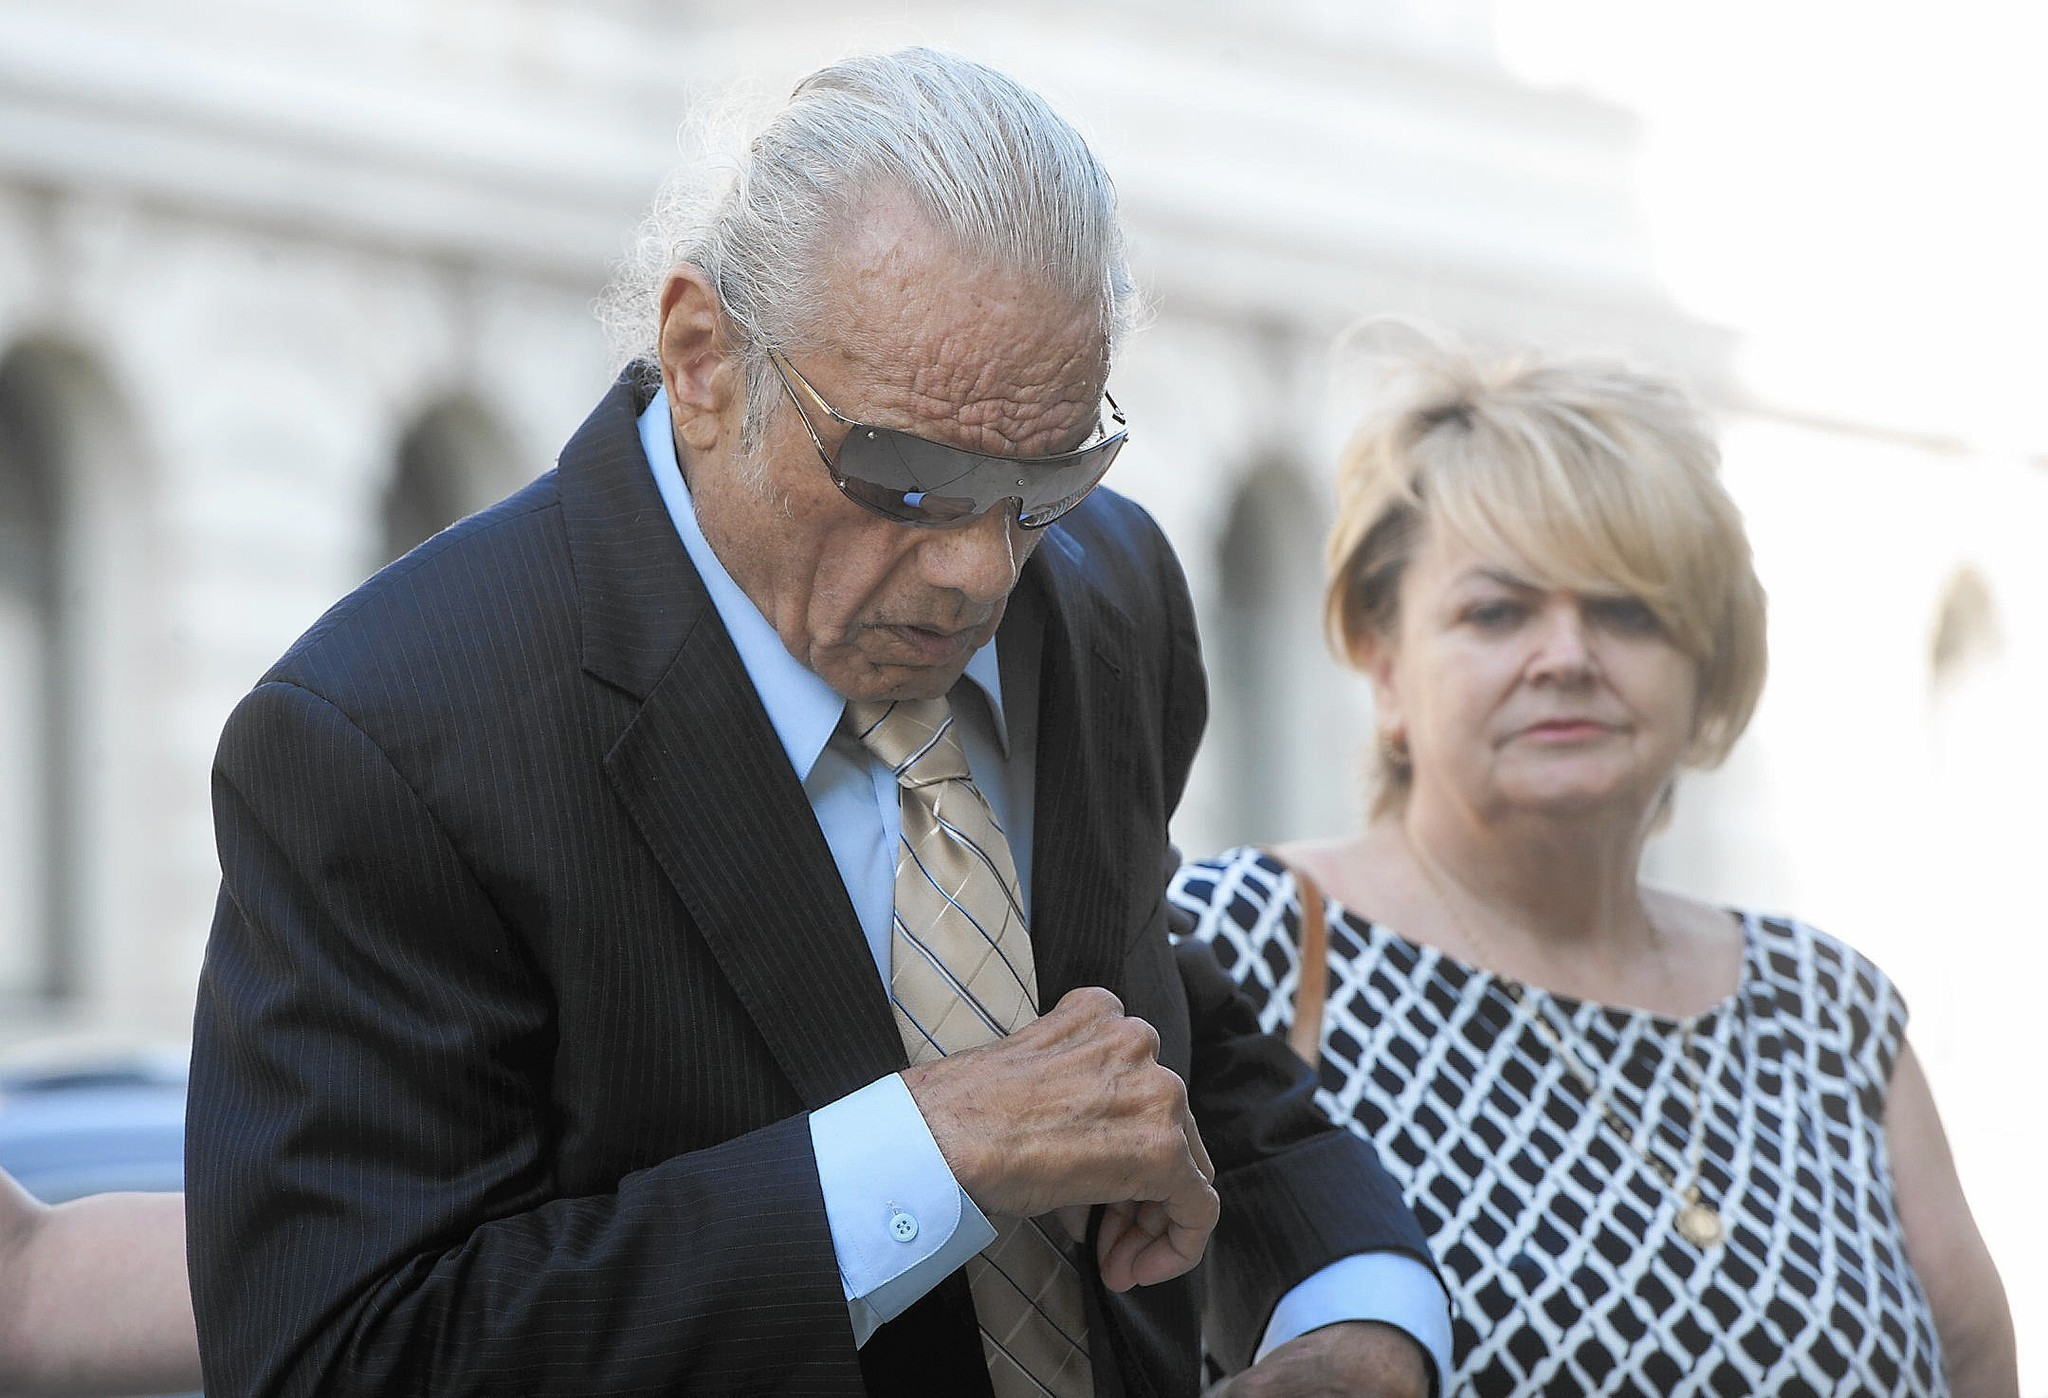 jimmy snuka not competent to stand trial the morning call